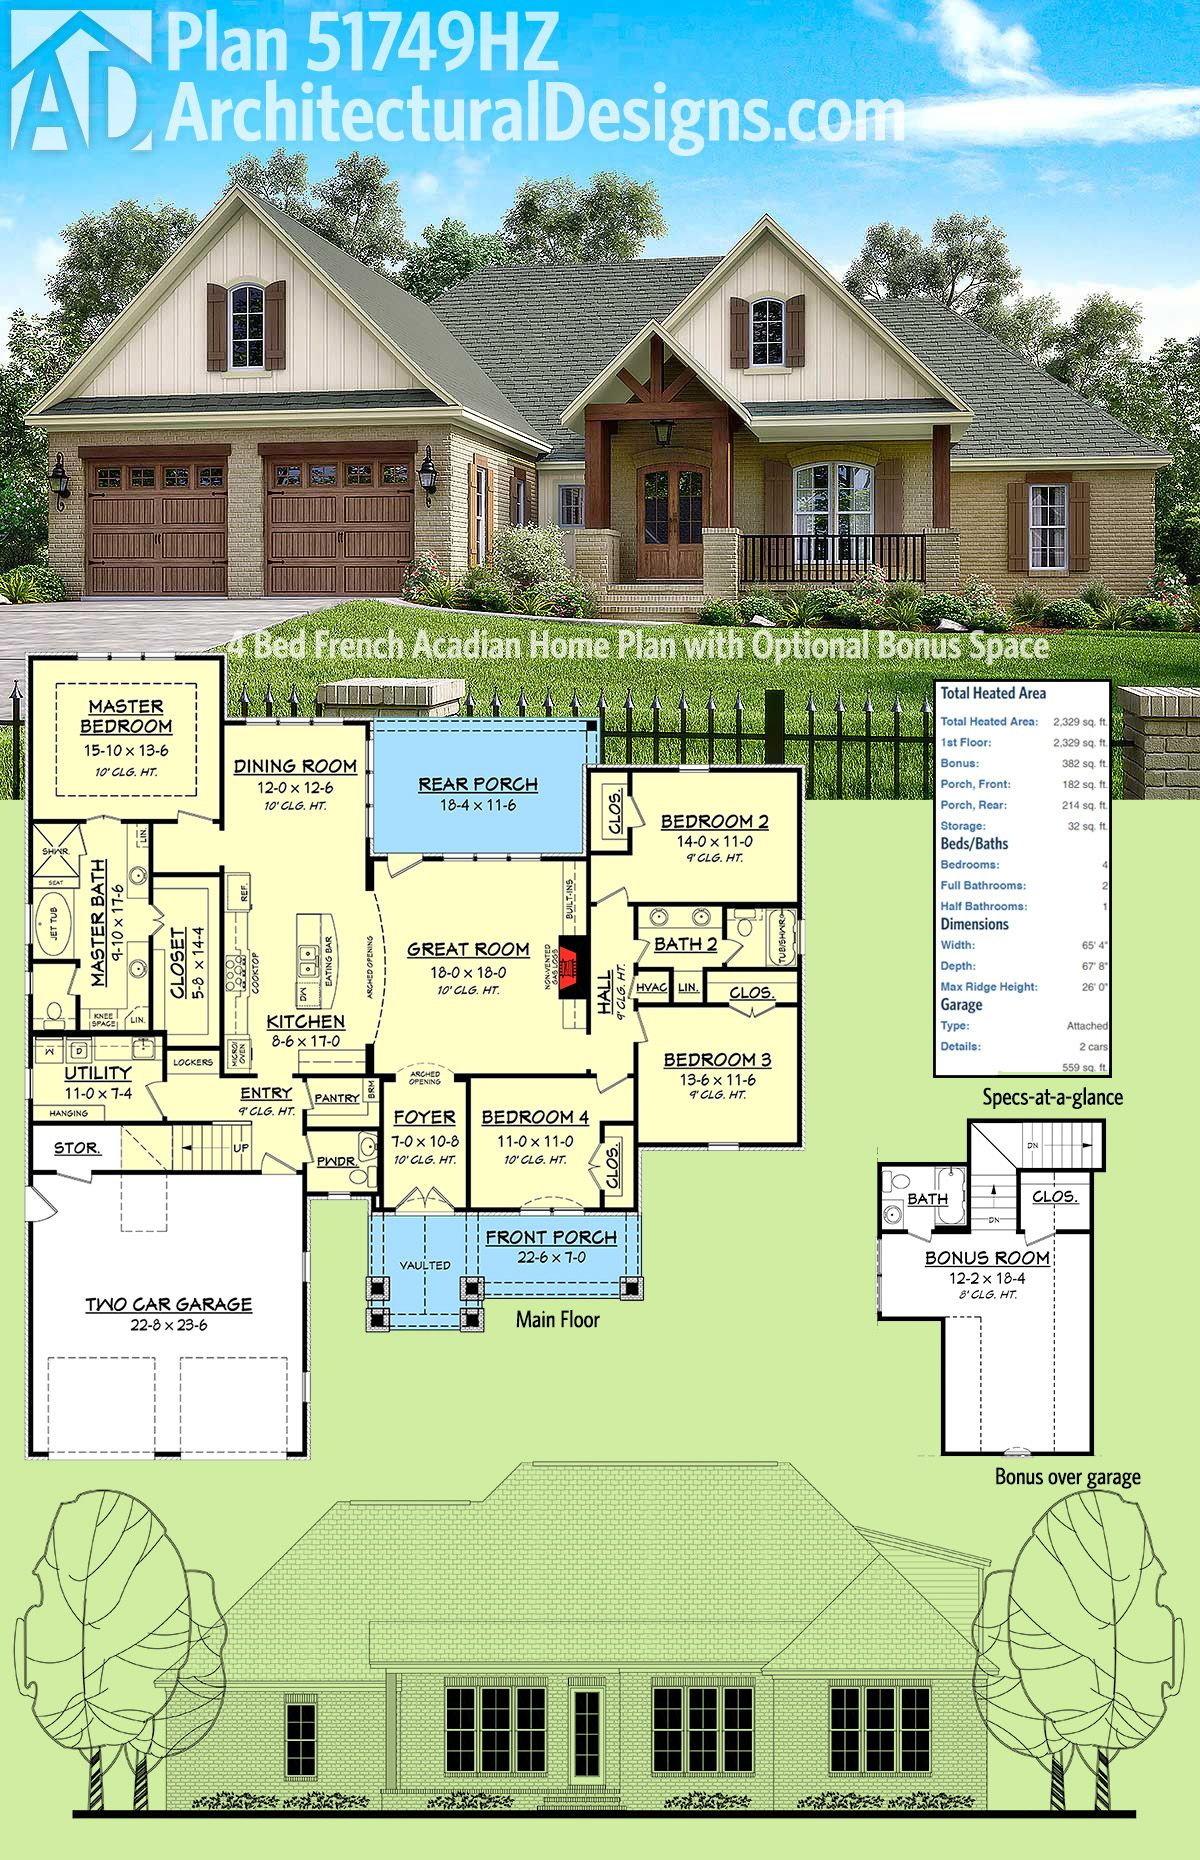 Plan 51749hz Four Bed French Acadian Home Plan With Optional Bonus Space Craftsman House Plans Craftsman House New House Plans